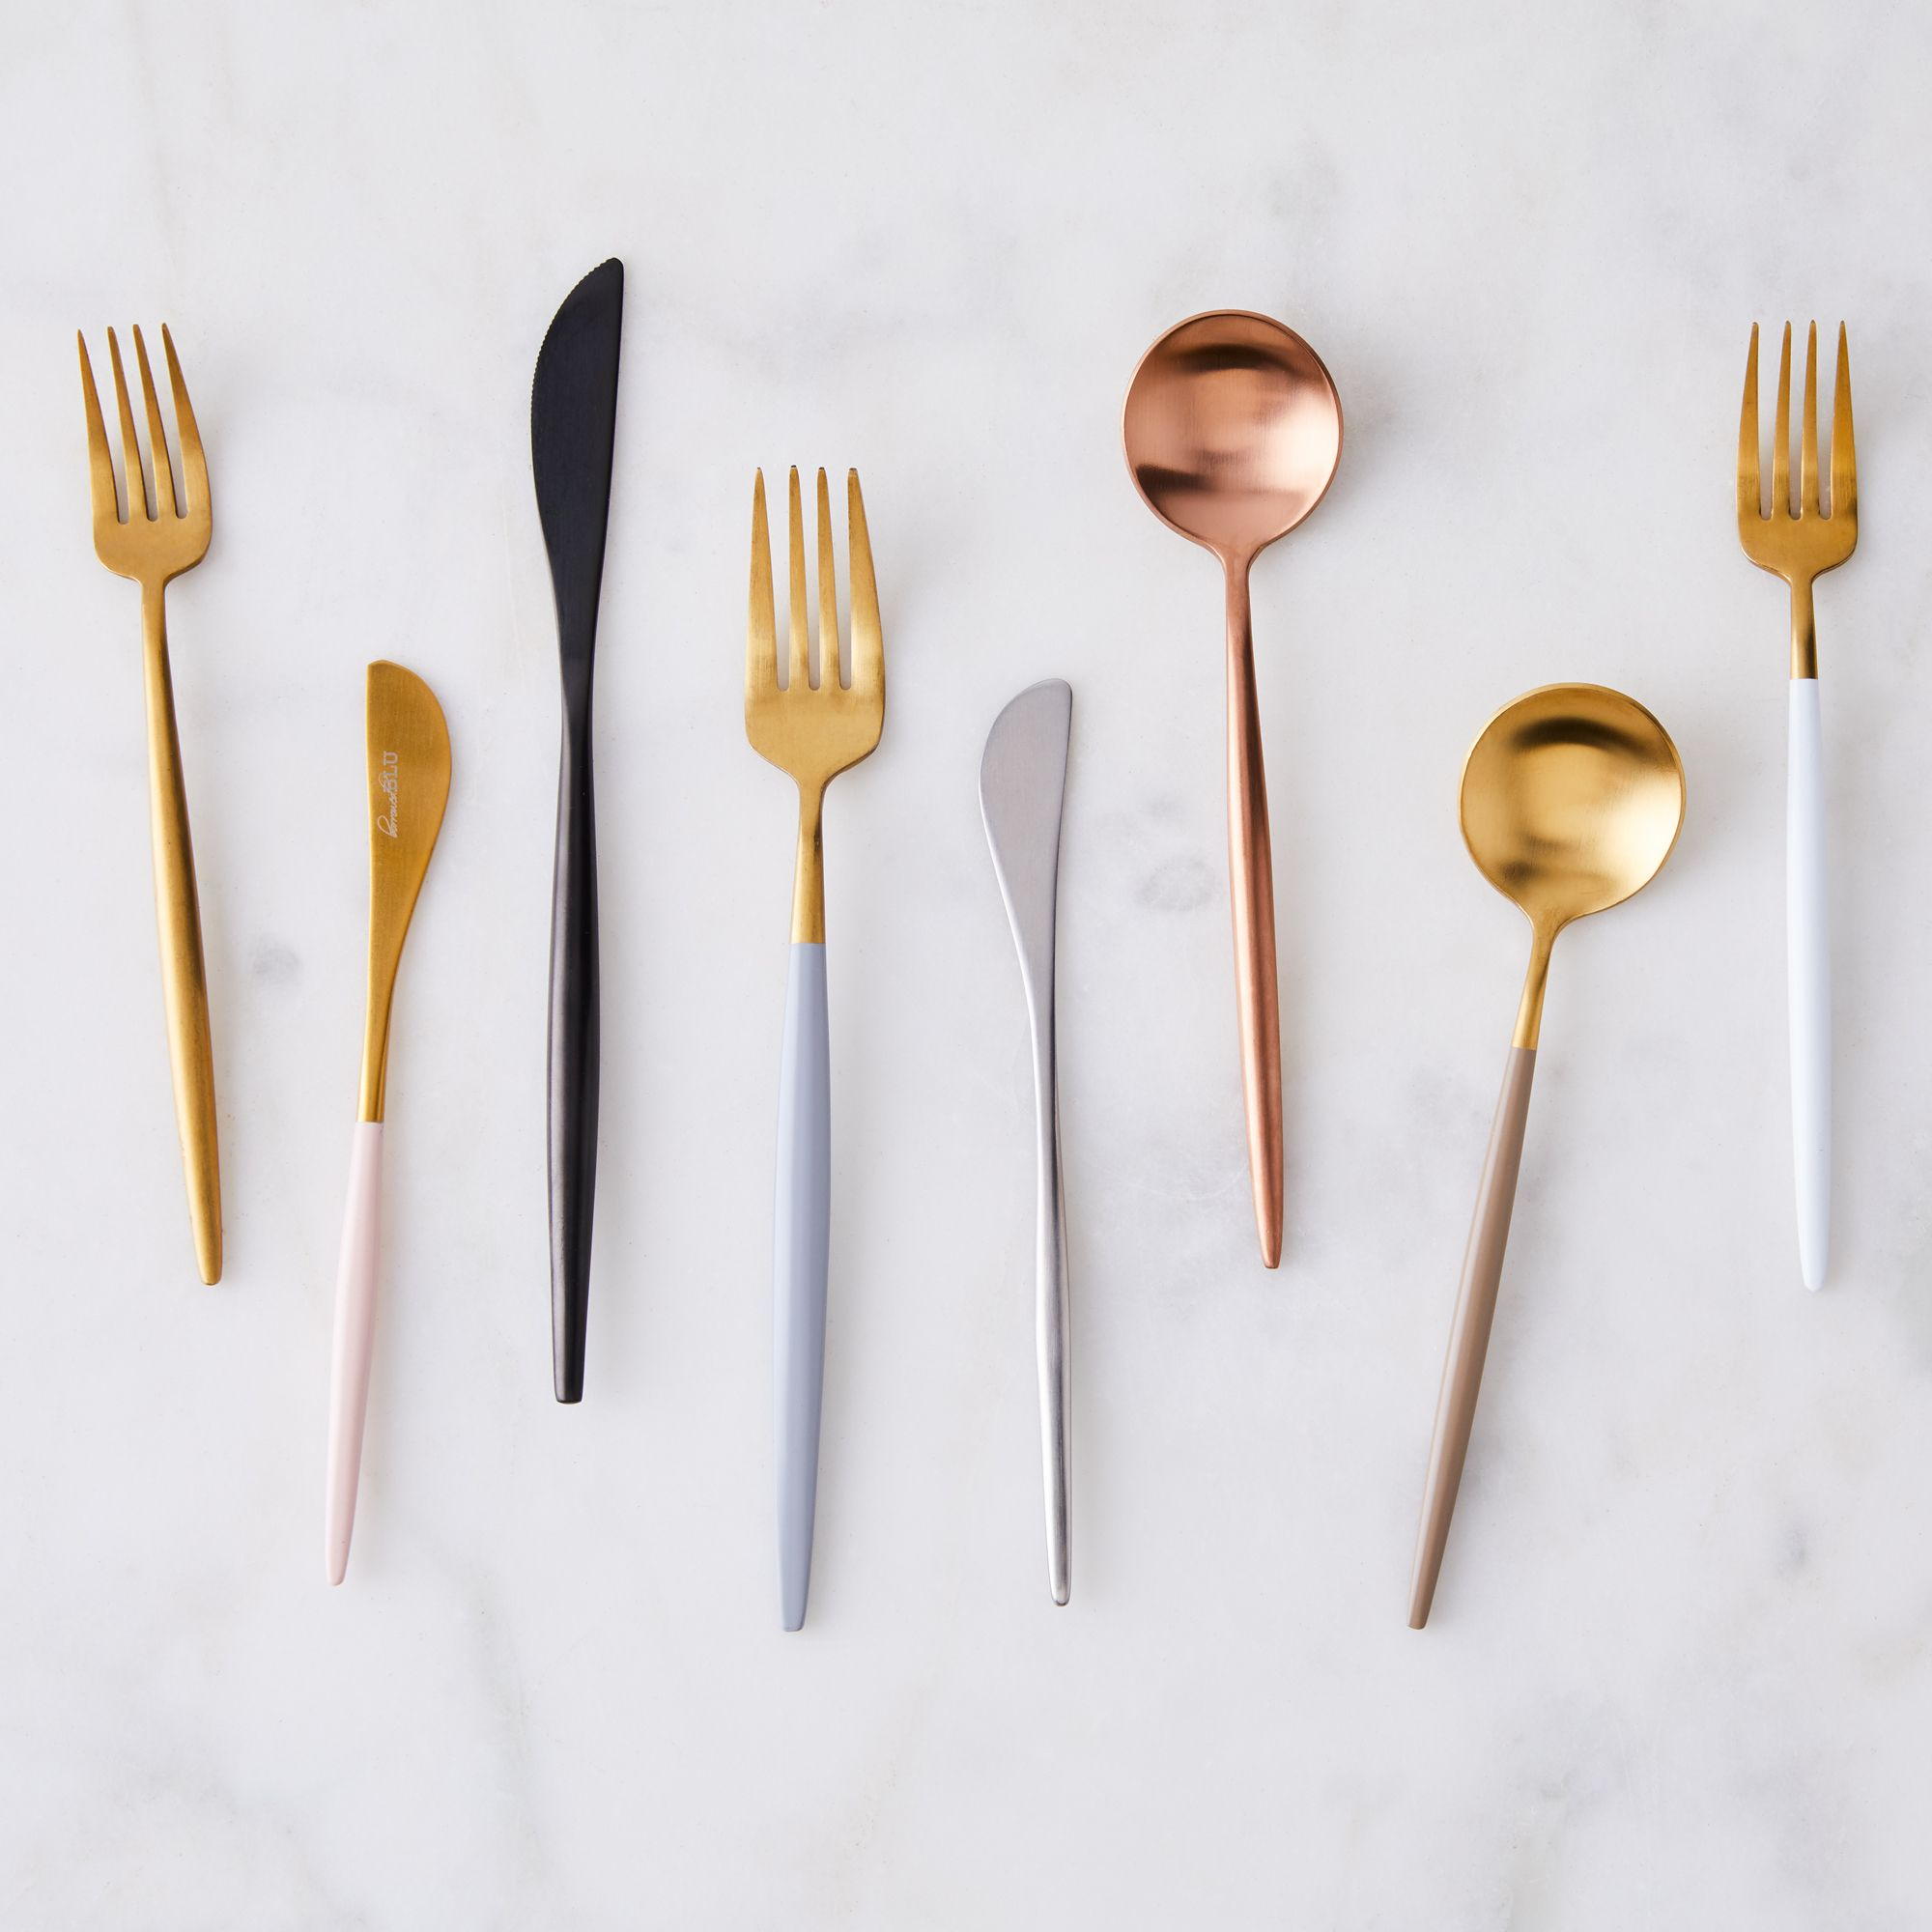 Modern flatware with a pointed handle